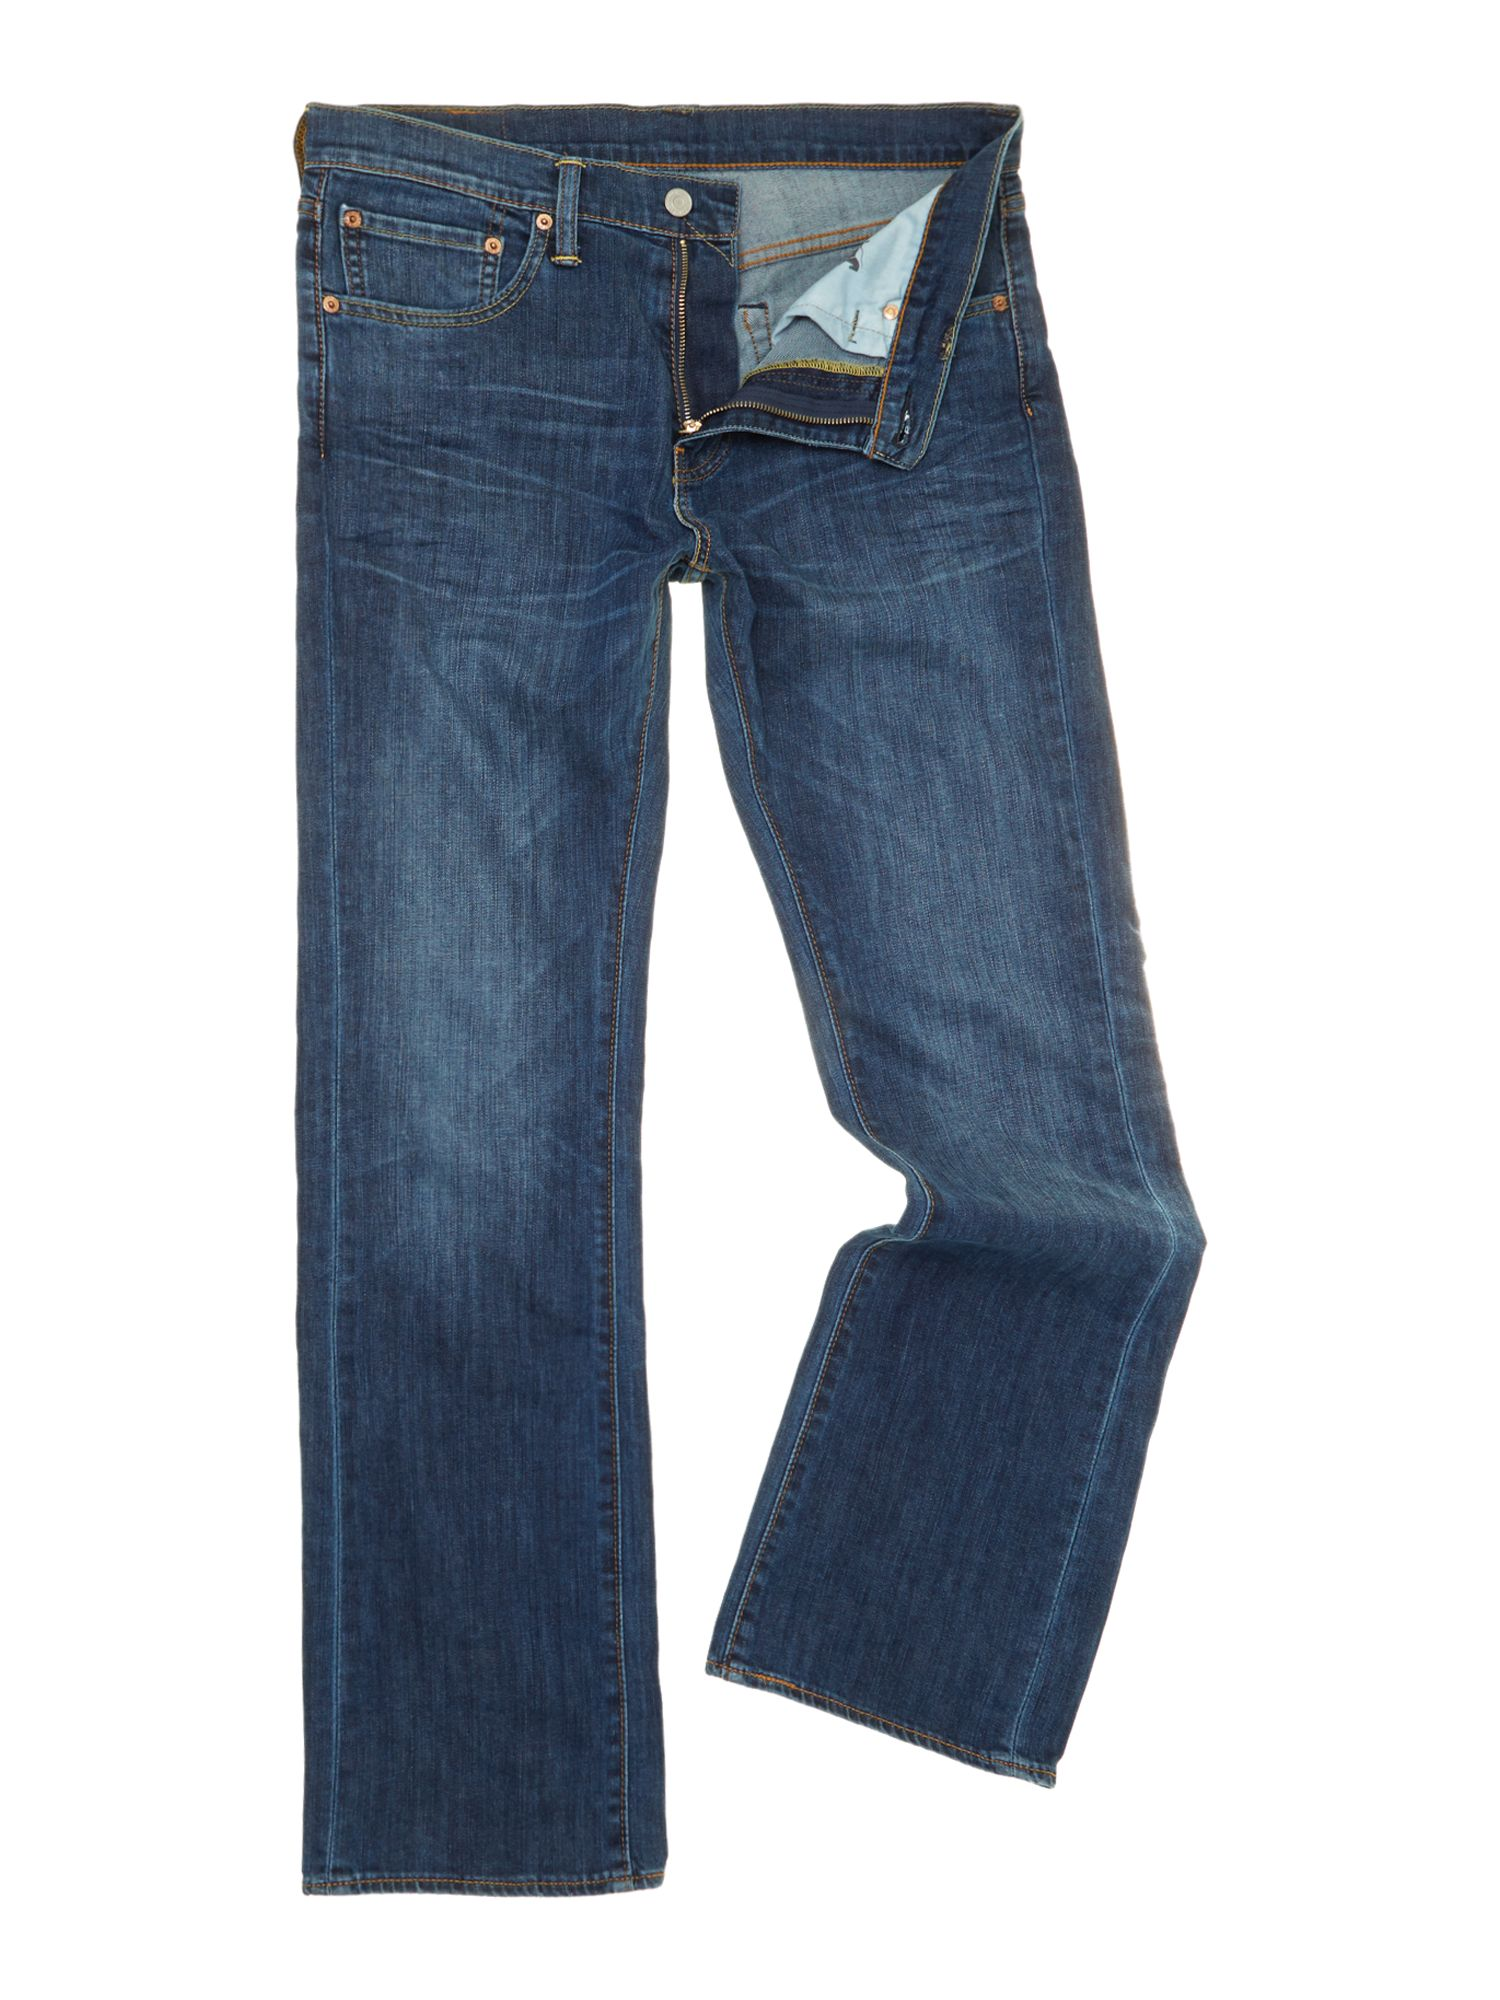 527 Bootcut Mostly Mid Blue jeans